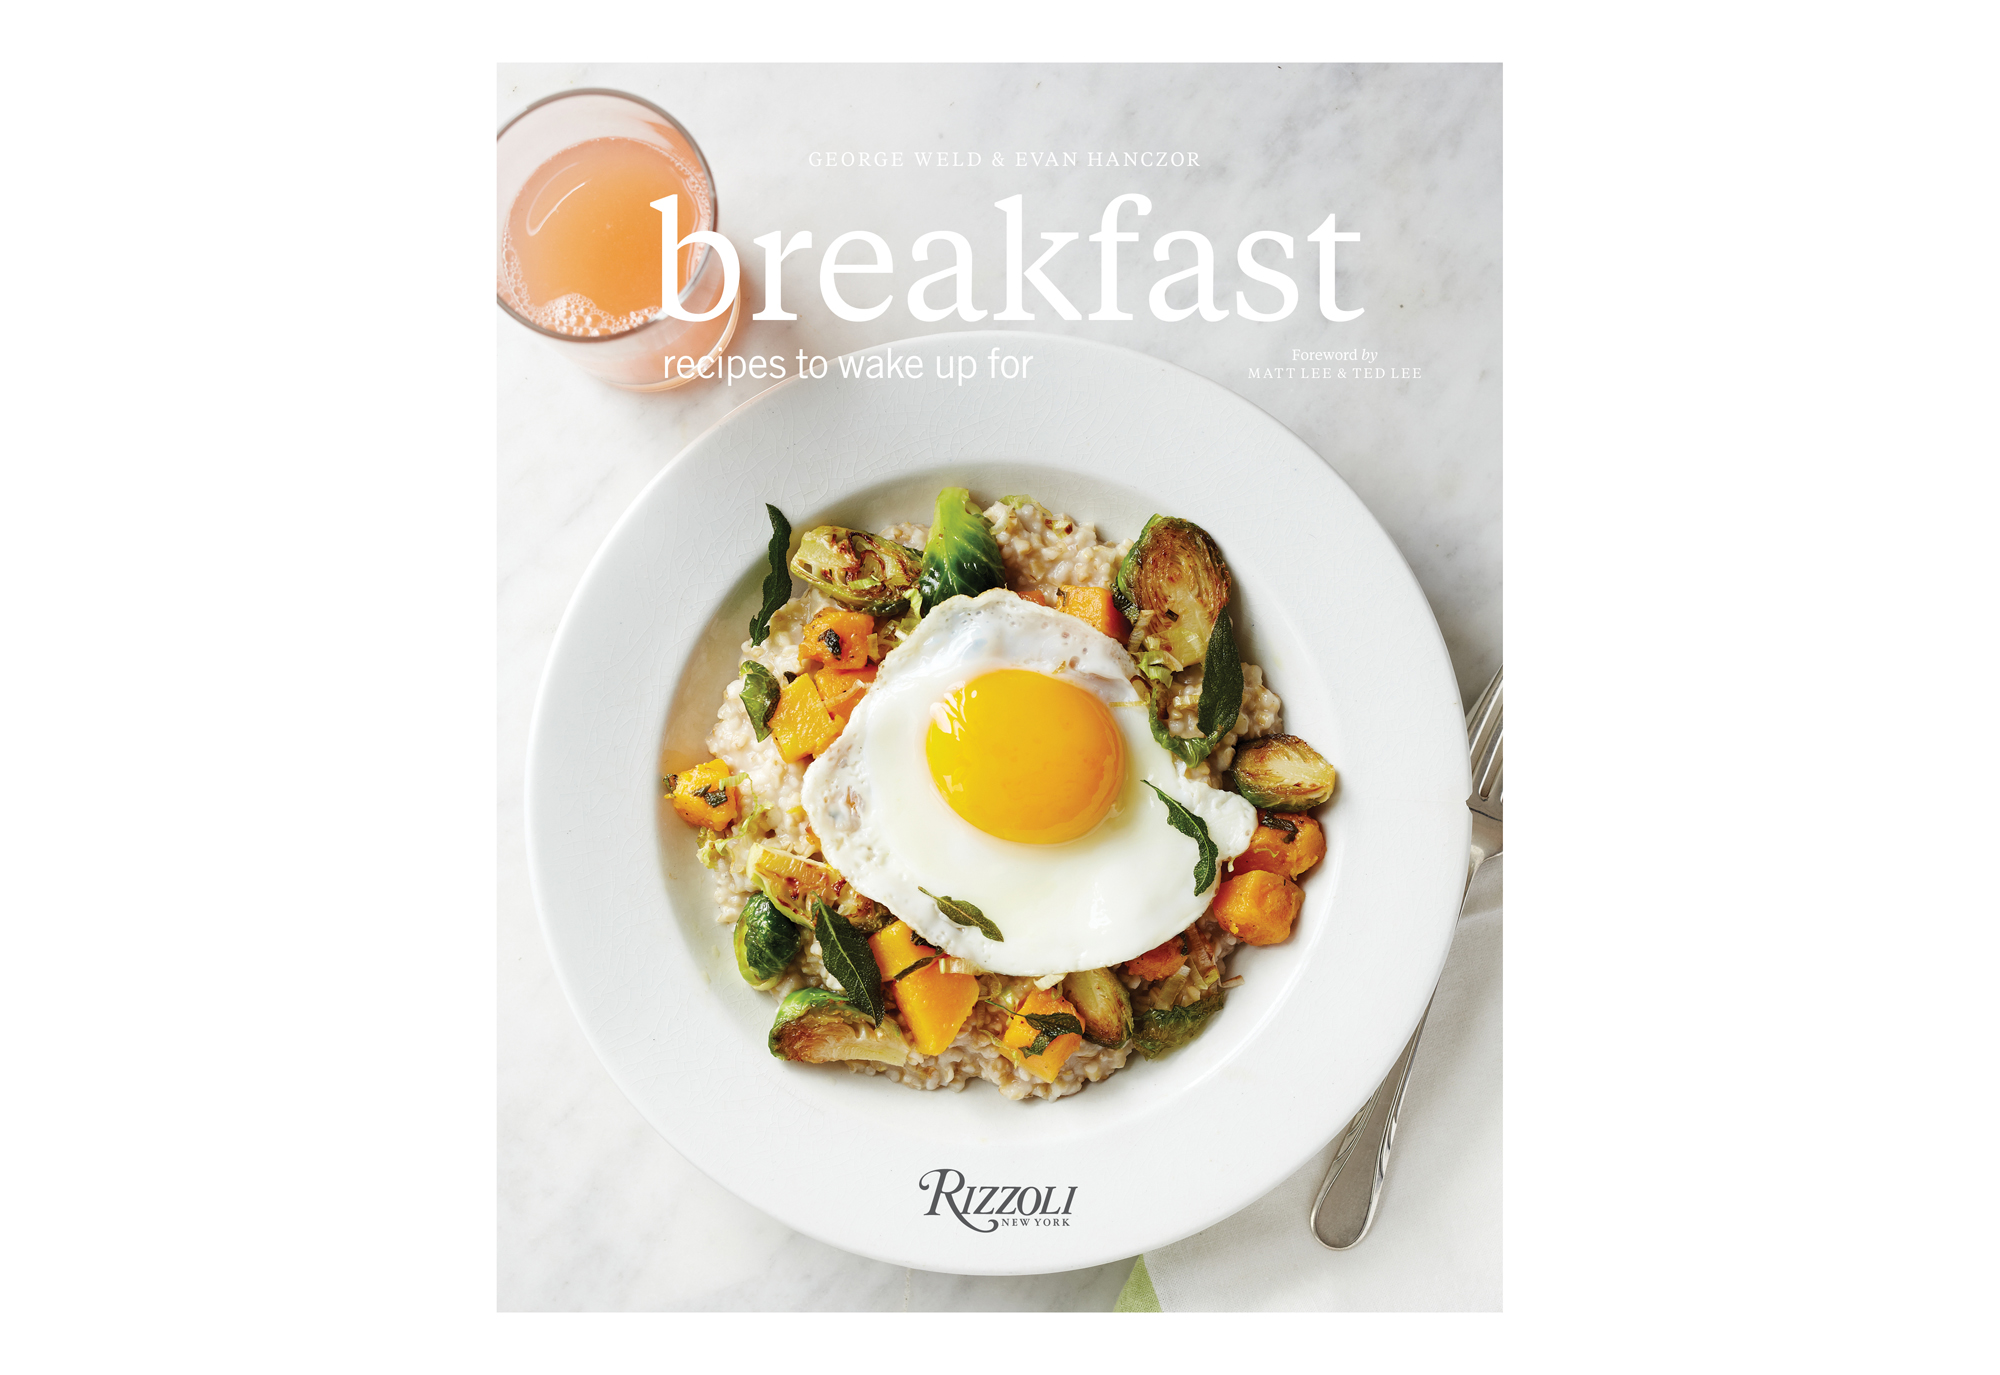 Breakfast: Recipes to Wake Up For, by George Weld and Evan Hanczor